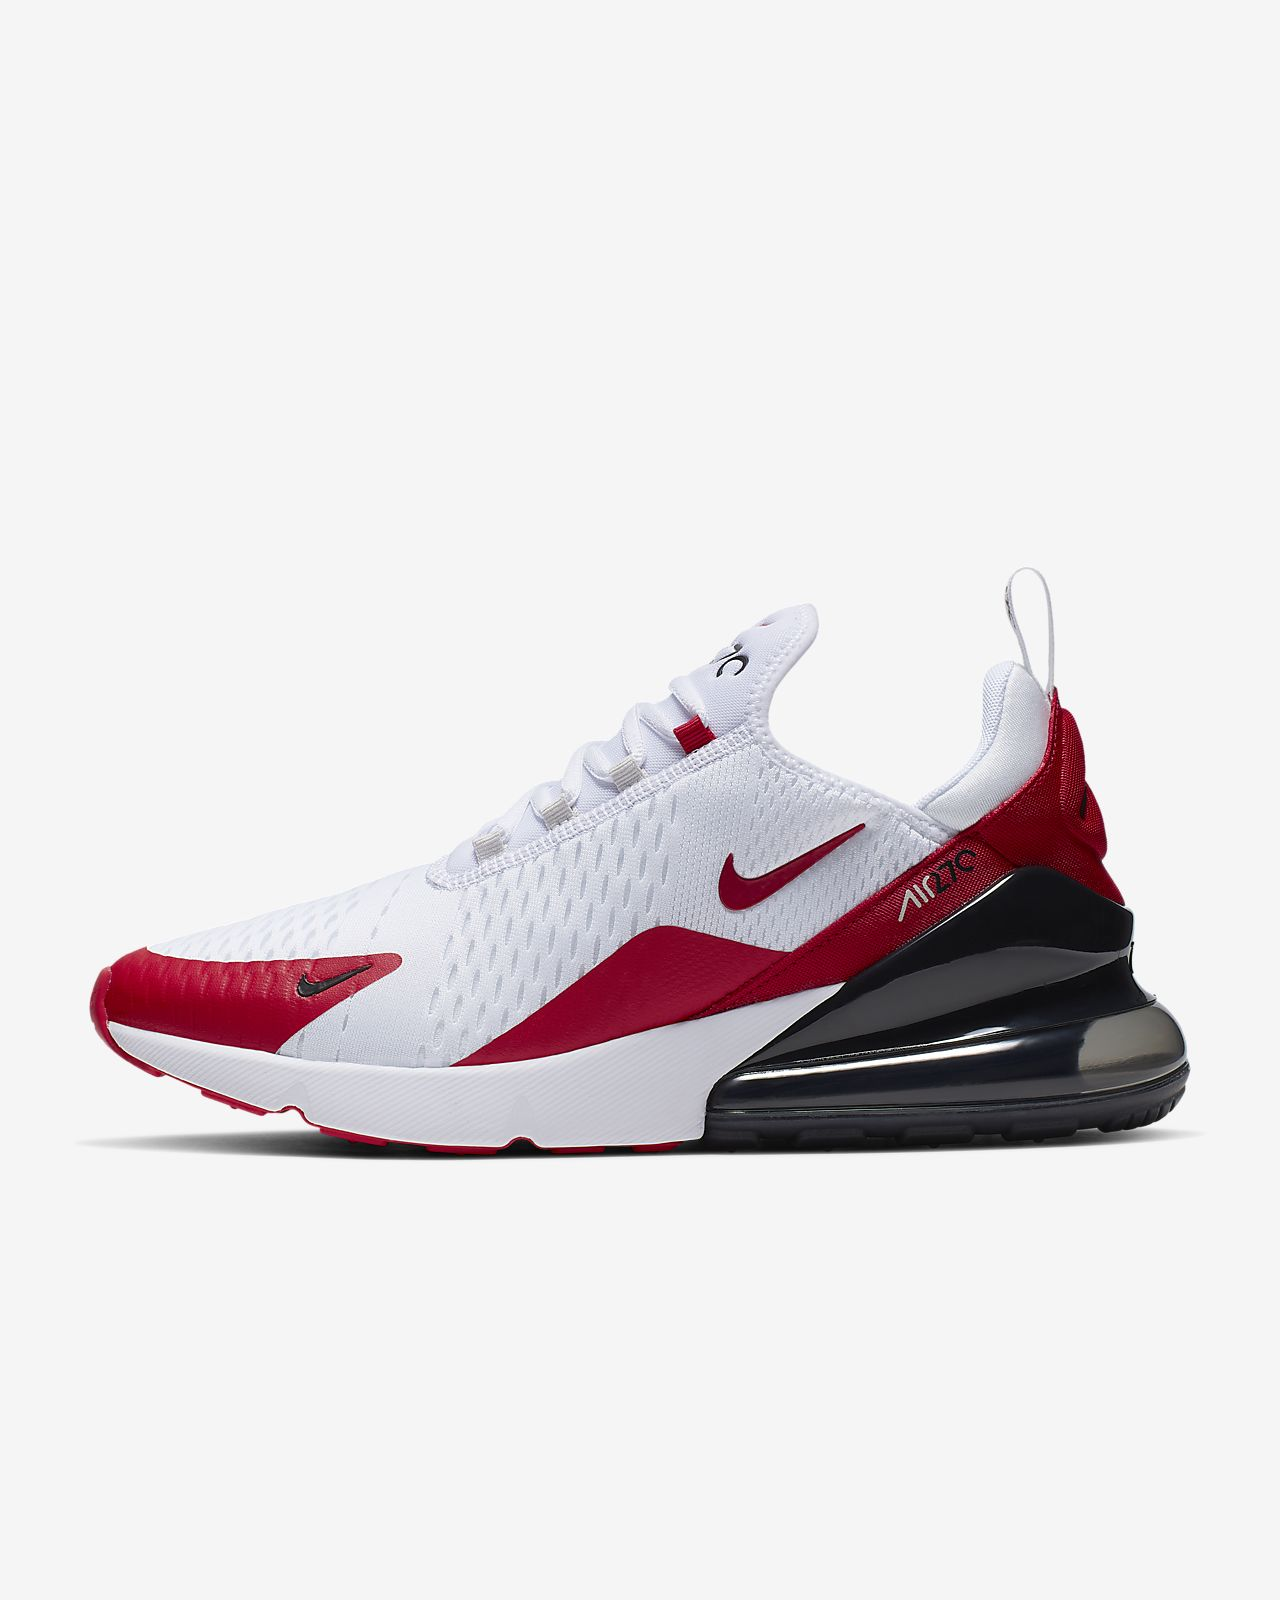 4ba927b5c0 Nike Air Max 270 Men's Shoe. Nike.com